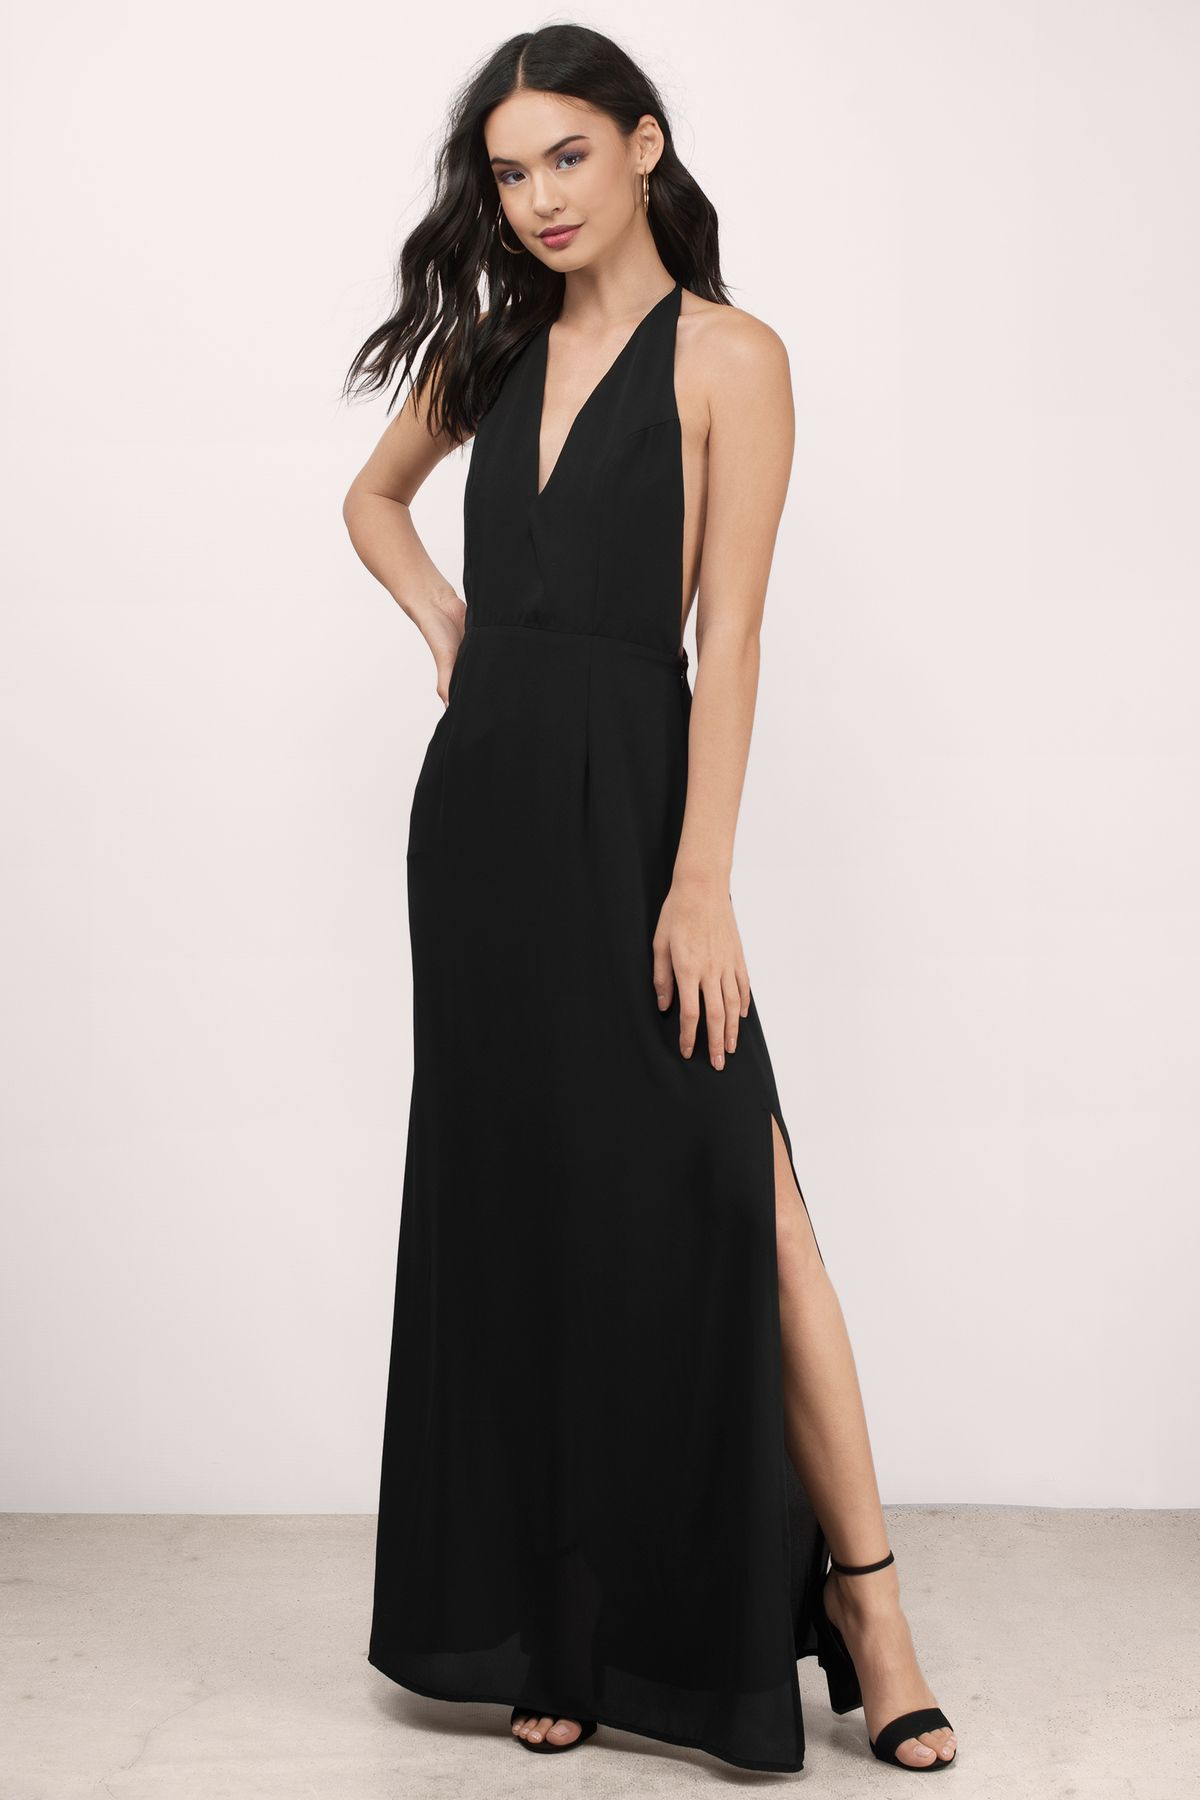 8 Fall Wedding Guest Dresses That Will Turn Heads This Season Mywedding Dresses To Wear To A Wedding Fall Wedding Guest Dress Floral Maxi Dress